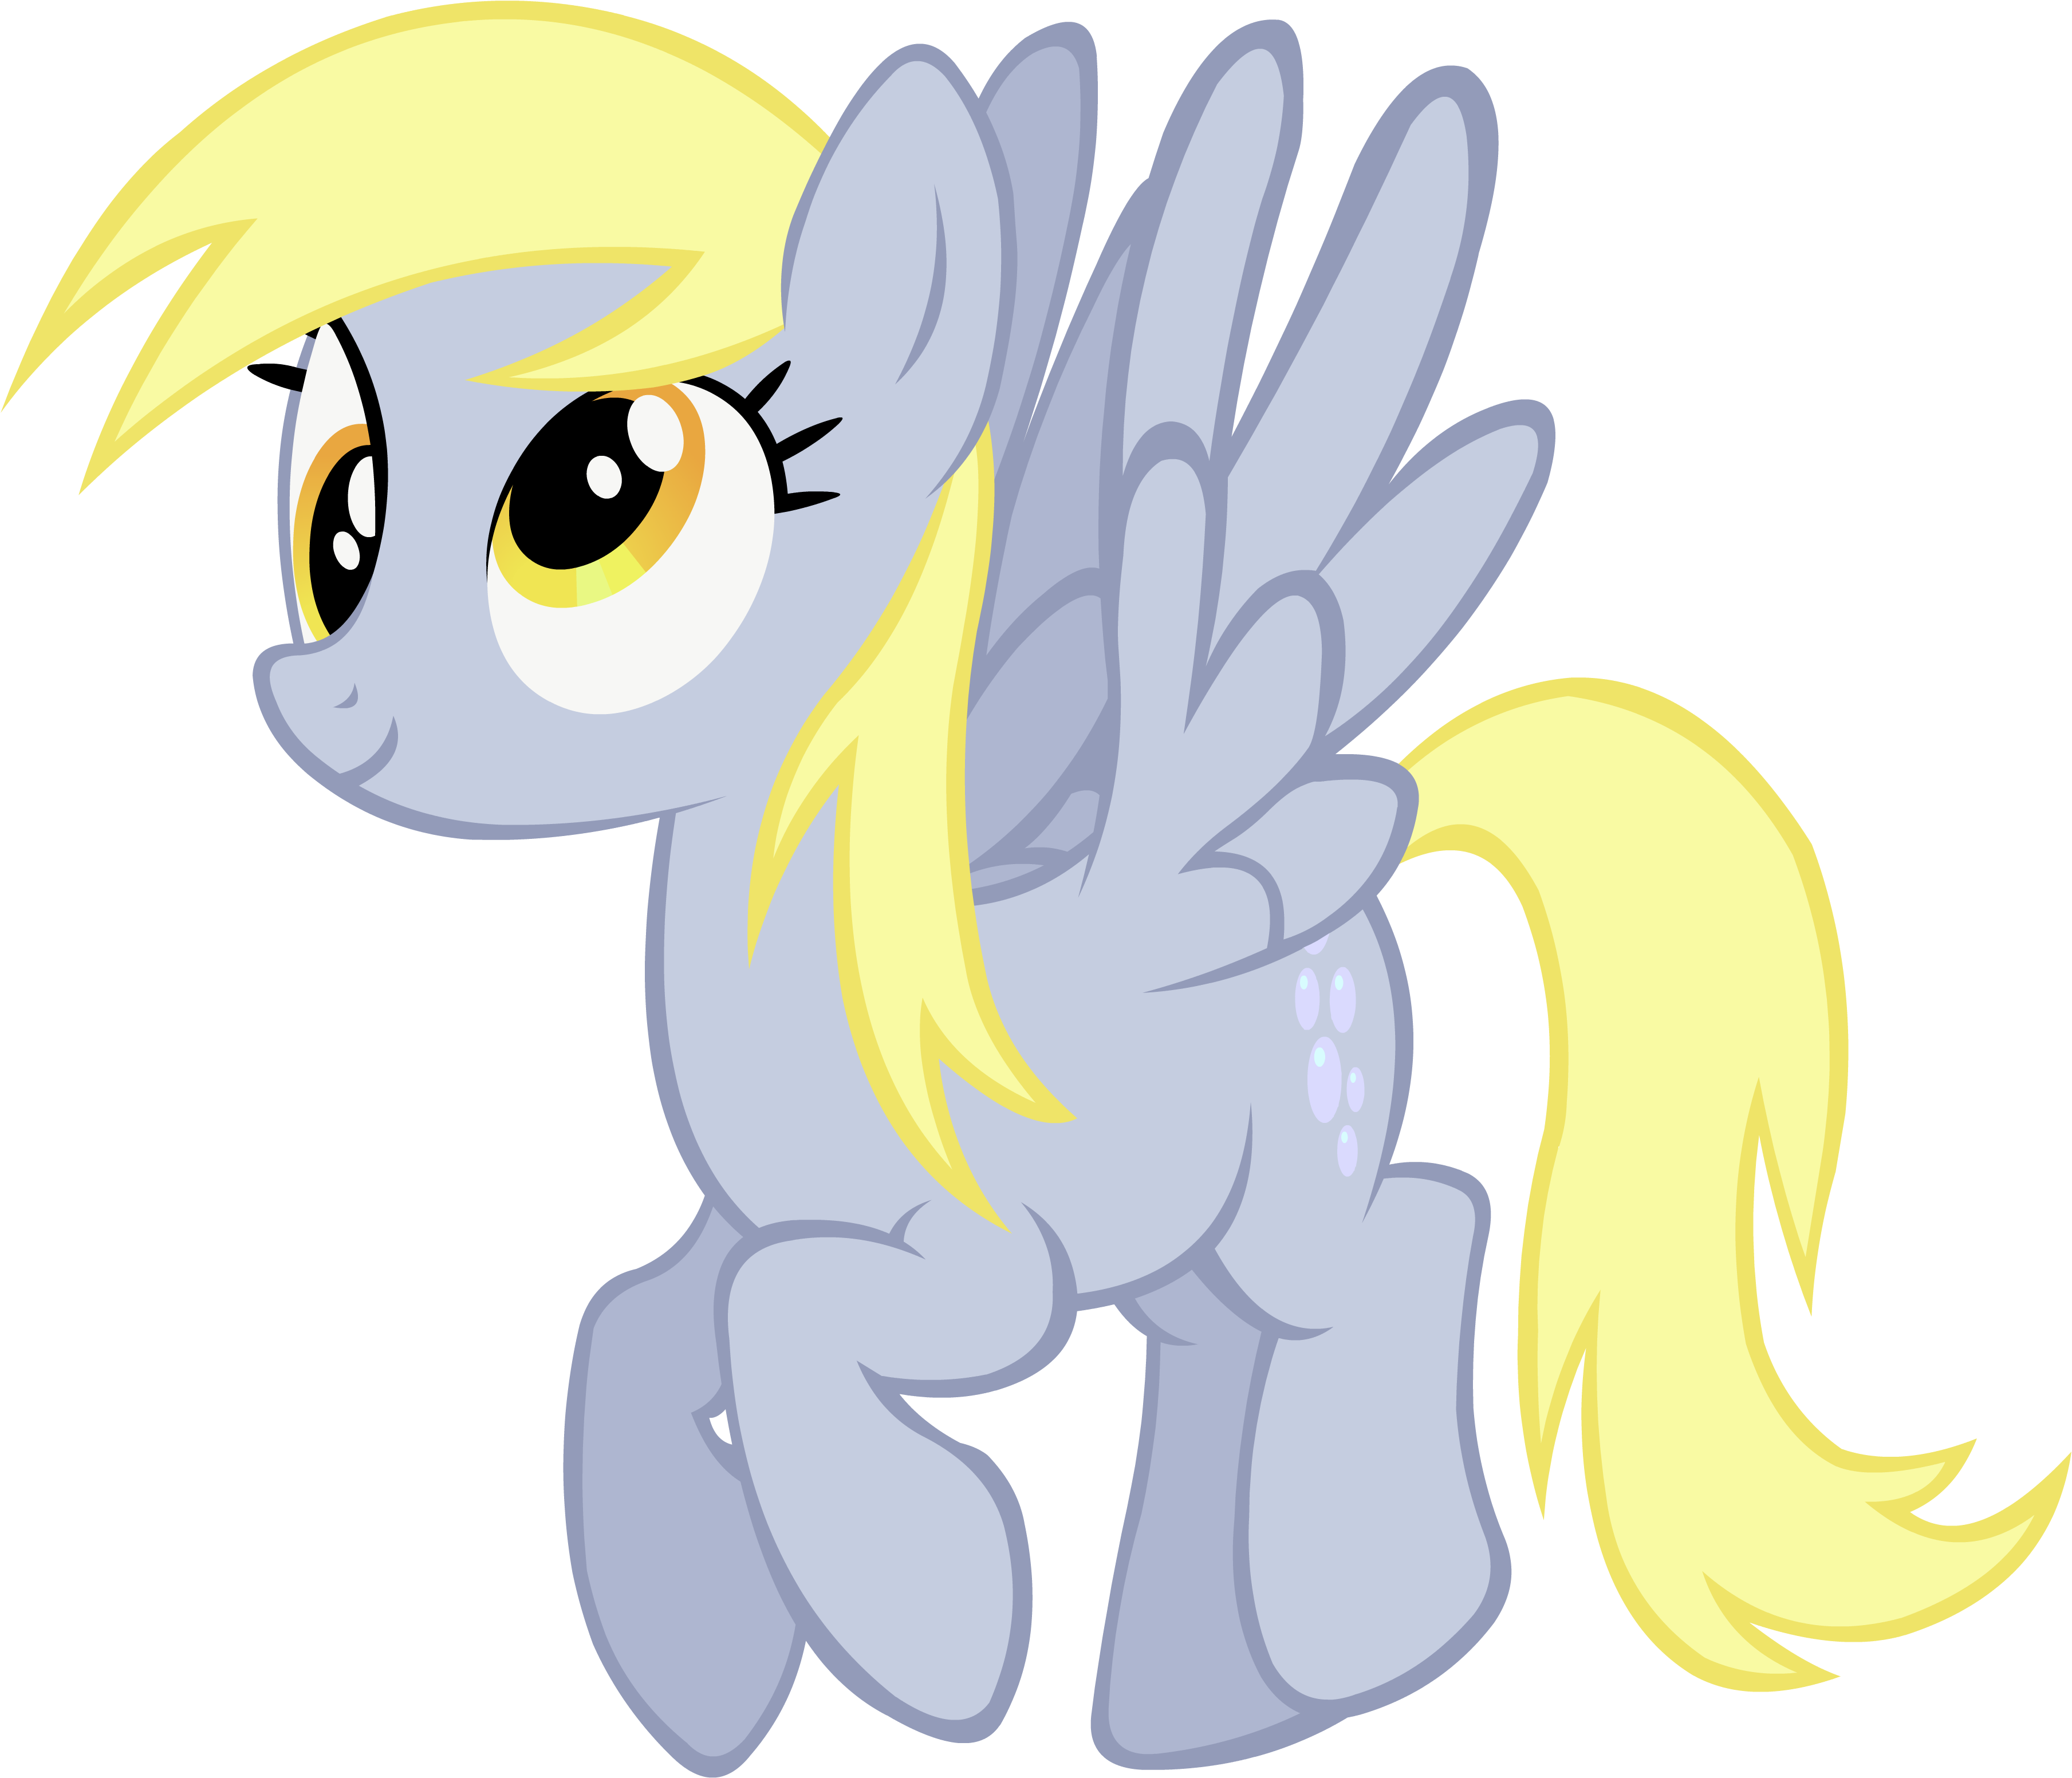 Derpy by Doctor G 3618x3105